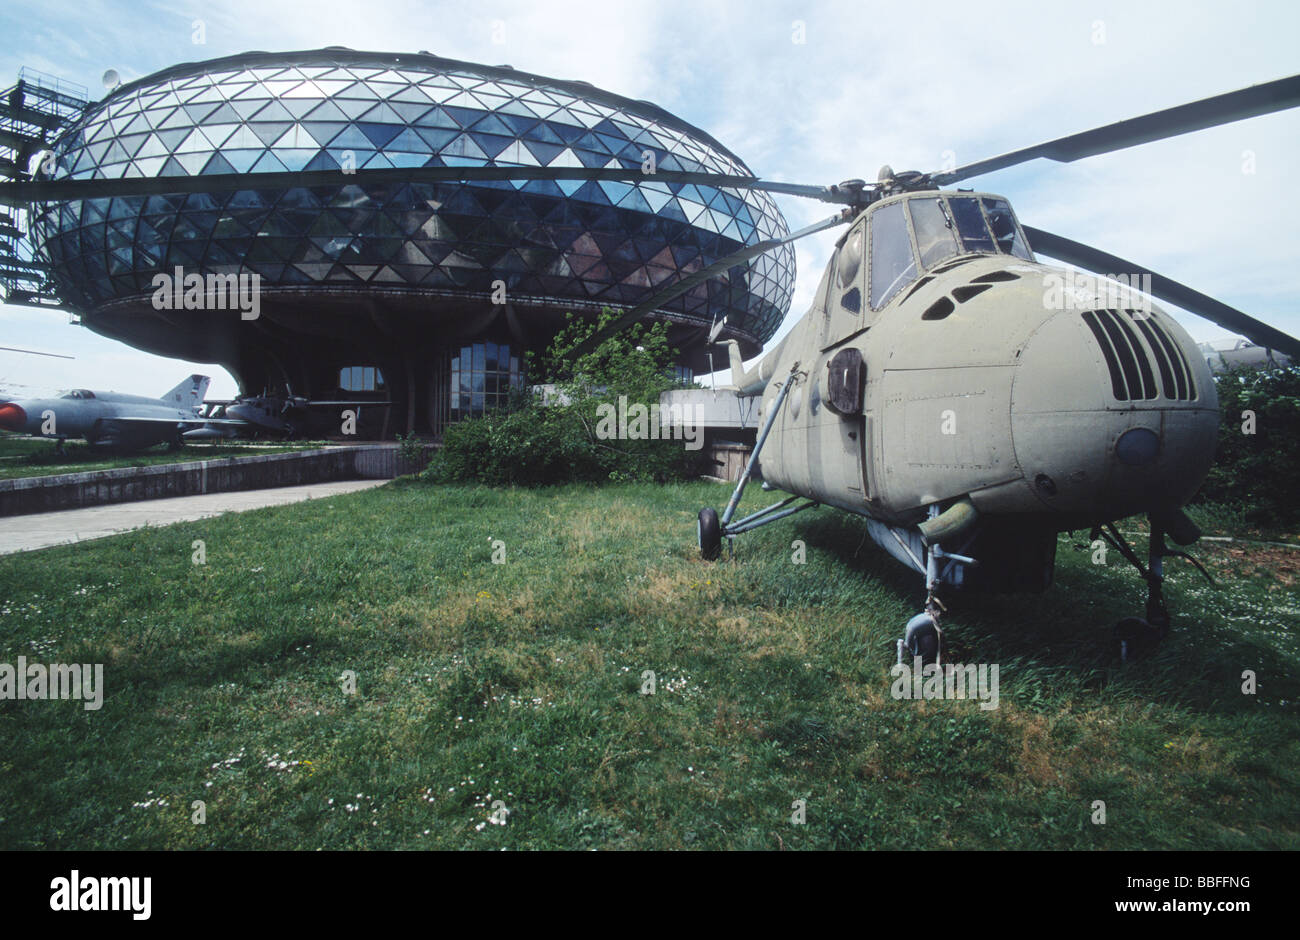 Military helicopter exposed in front of the Aeronautical museum at Nikola Tesla airport, Belgrade, Serbia - Stock Image